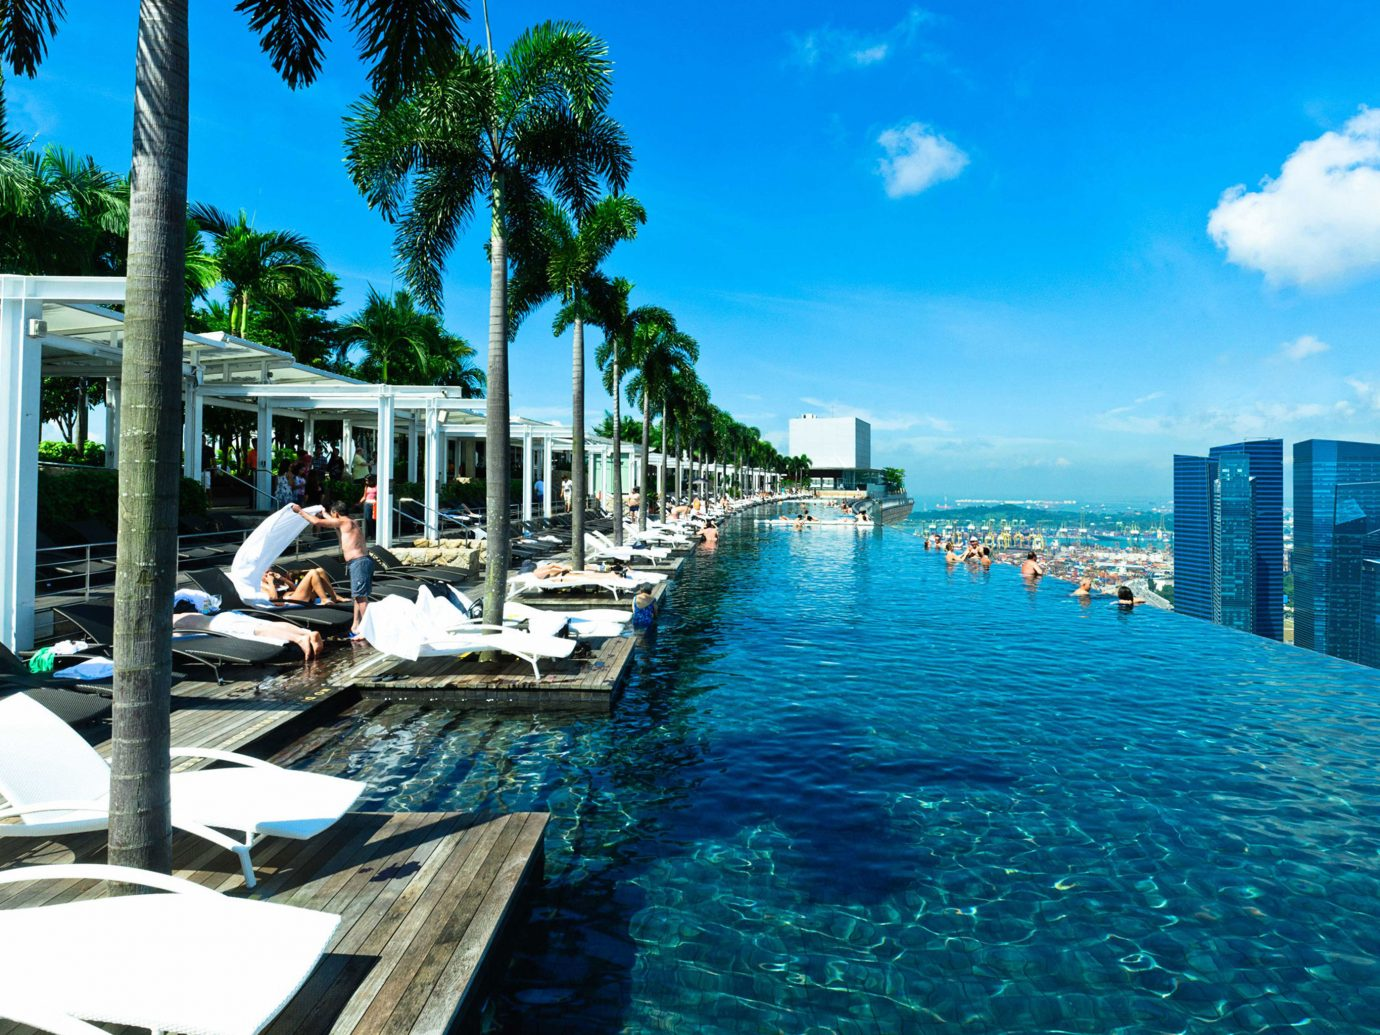 Infinity Pool At The Marina Bay Sands Hotel In Singapore